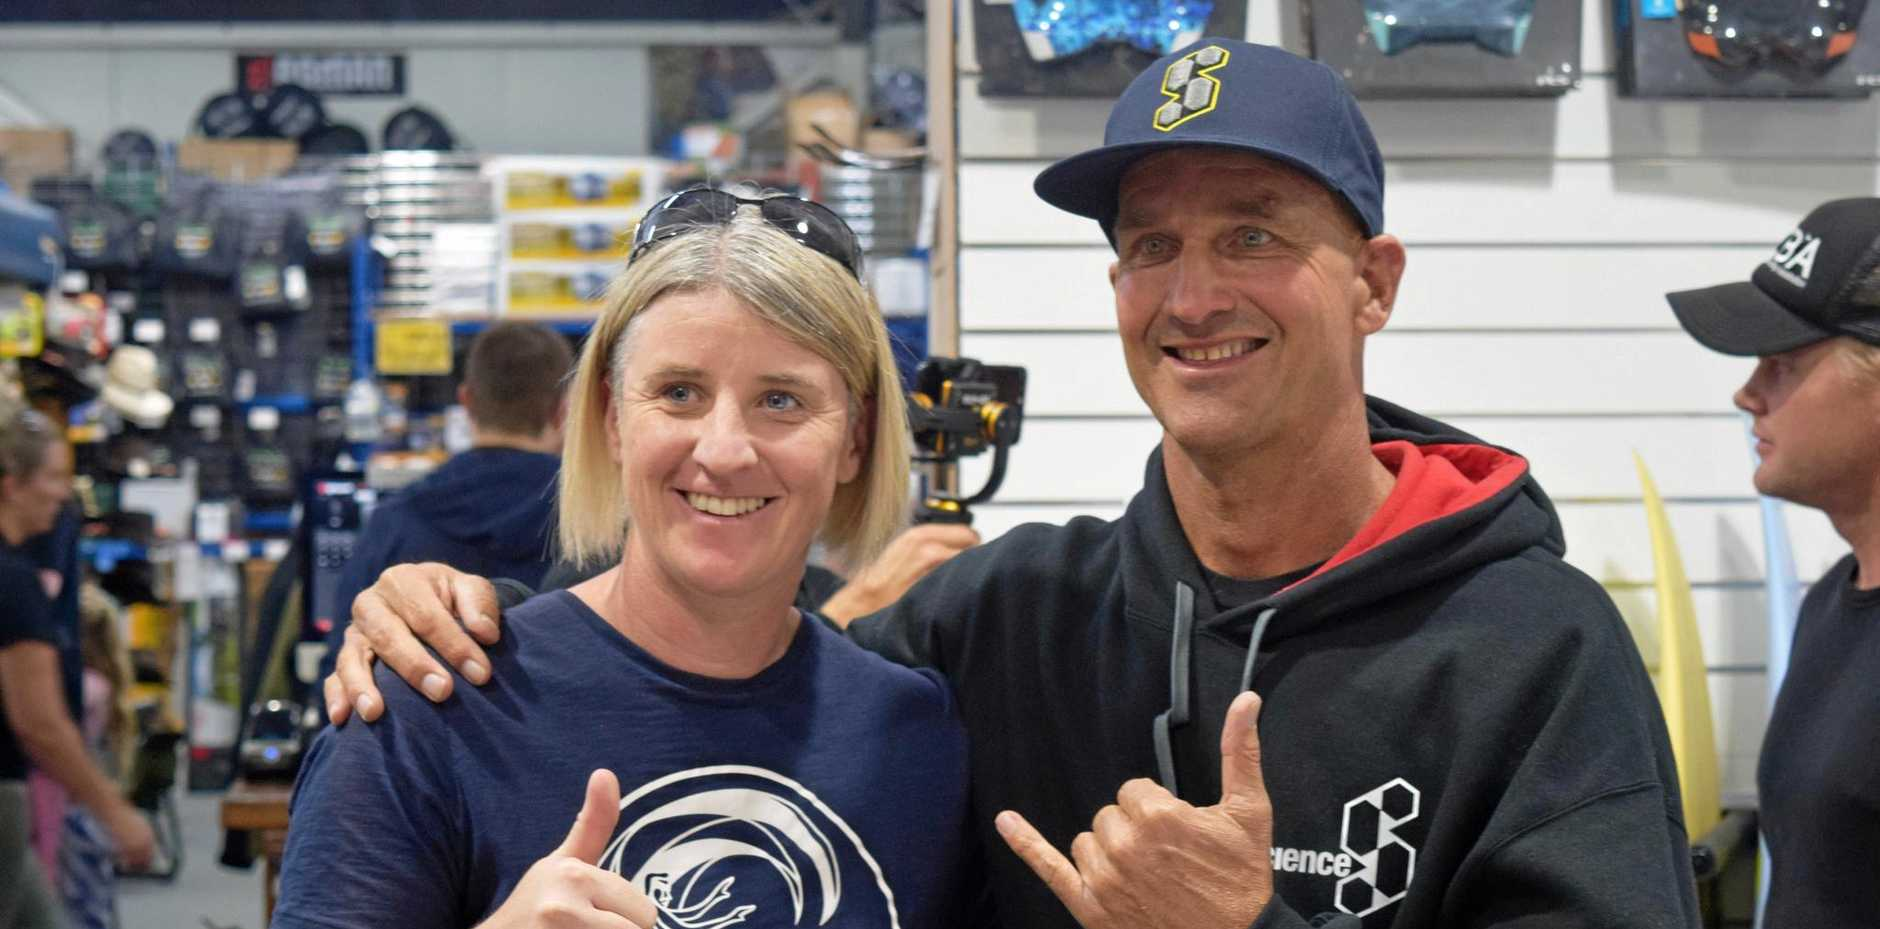 SURF LEGEND: Nine-time world bodyboarding champion and big wave body surfer Mike Stewart meets fans at Coffs Harbour's Outdoor World on Saturday.